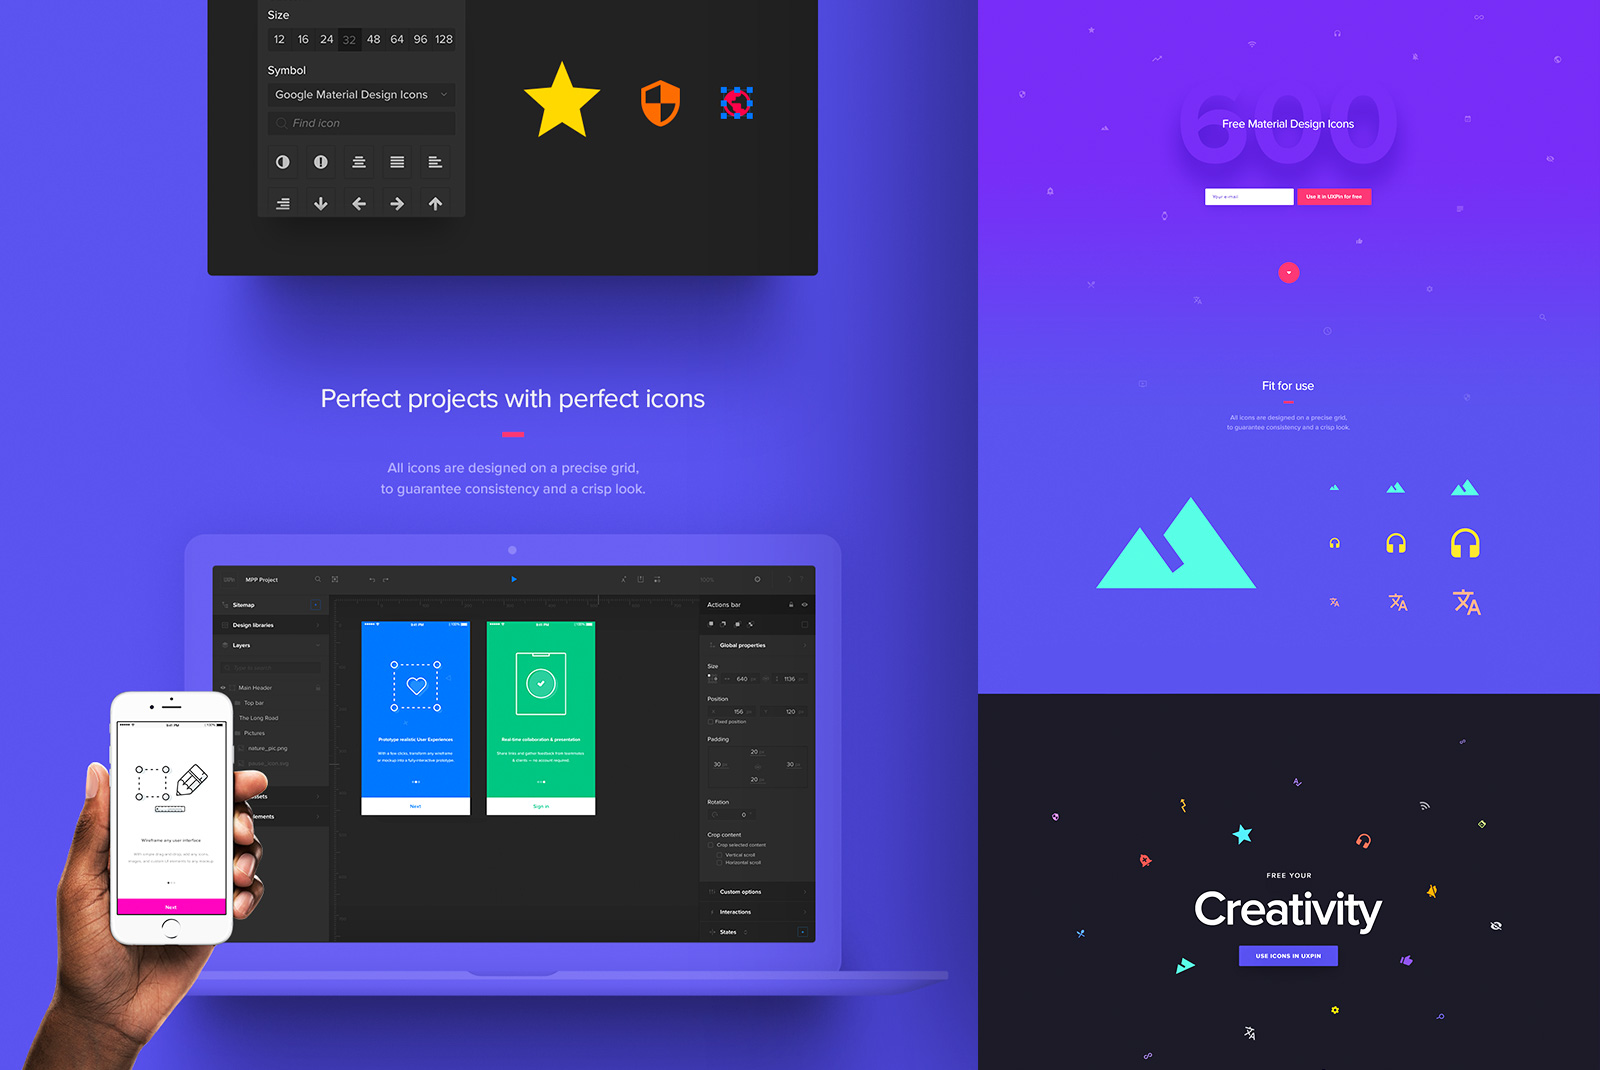 Web Design Trends 2016 The Definitive Guide